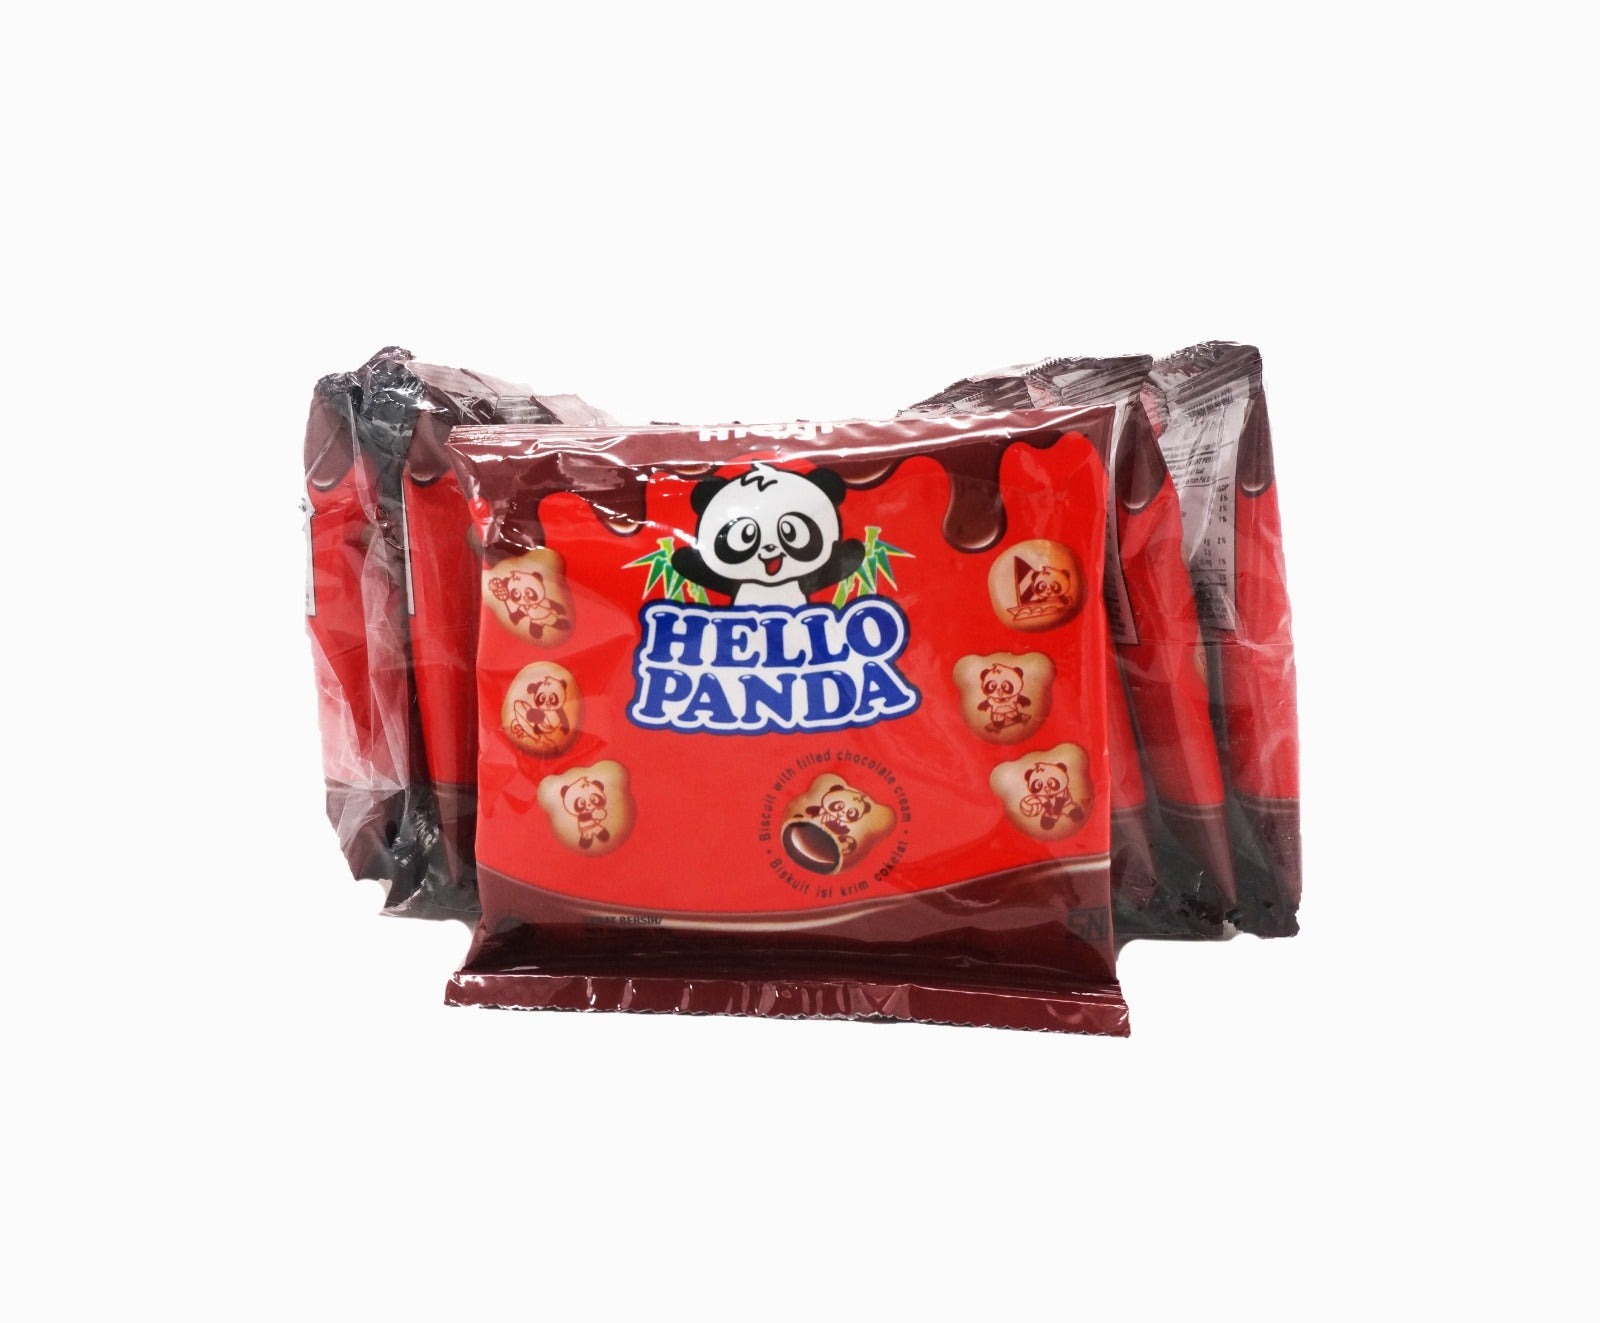 Meiji Hello Panda Biscuits Pack - Chocolate (10s x 10g – Piece)